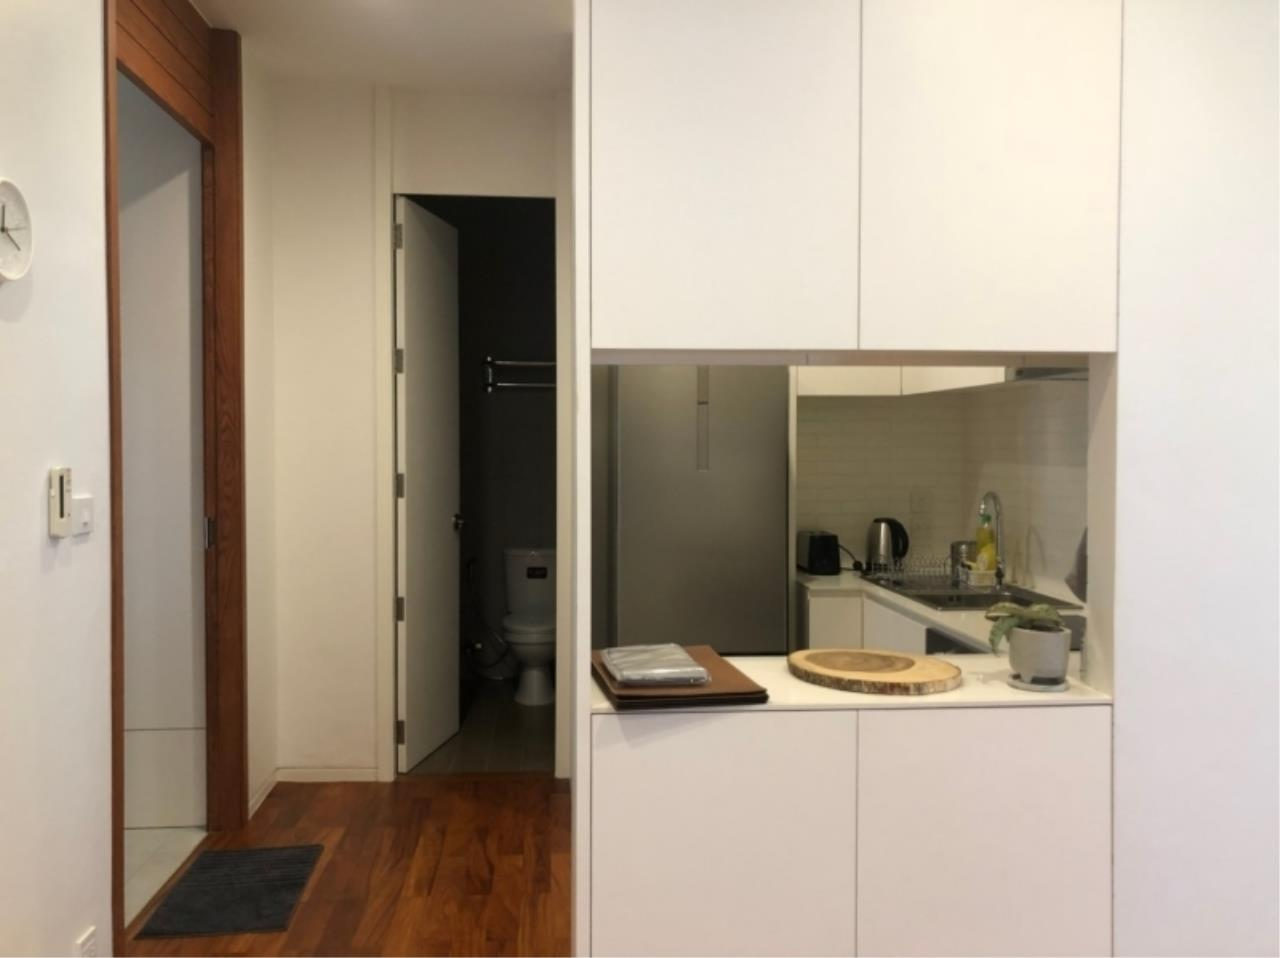 Century21 Skylux Agency's 33 Serviced Apartment / Apartment (Serviced) For Rent / 2 Bedroom / 120 SQM / BTS Asok / Bangkok 5